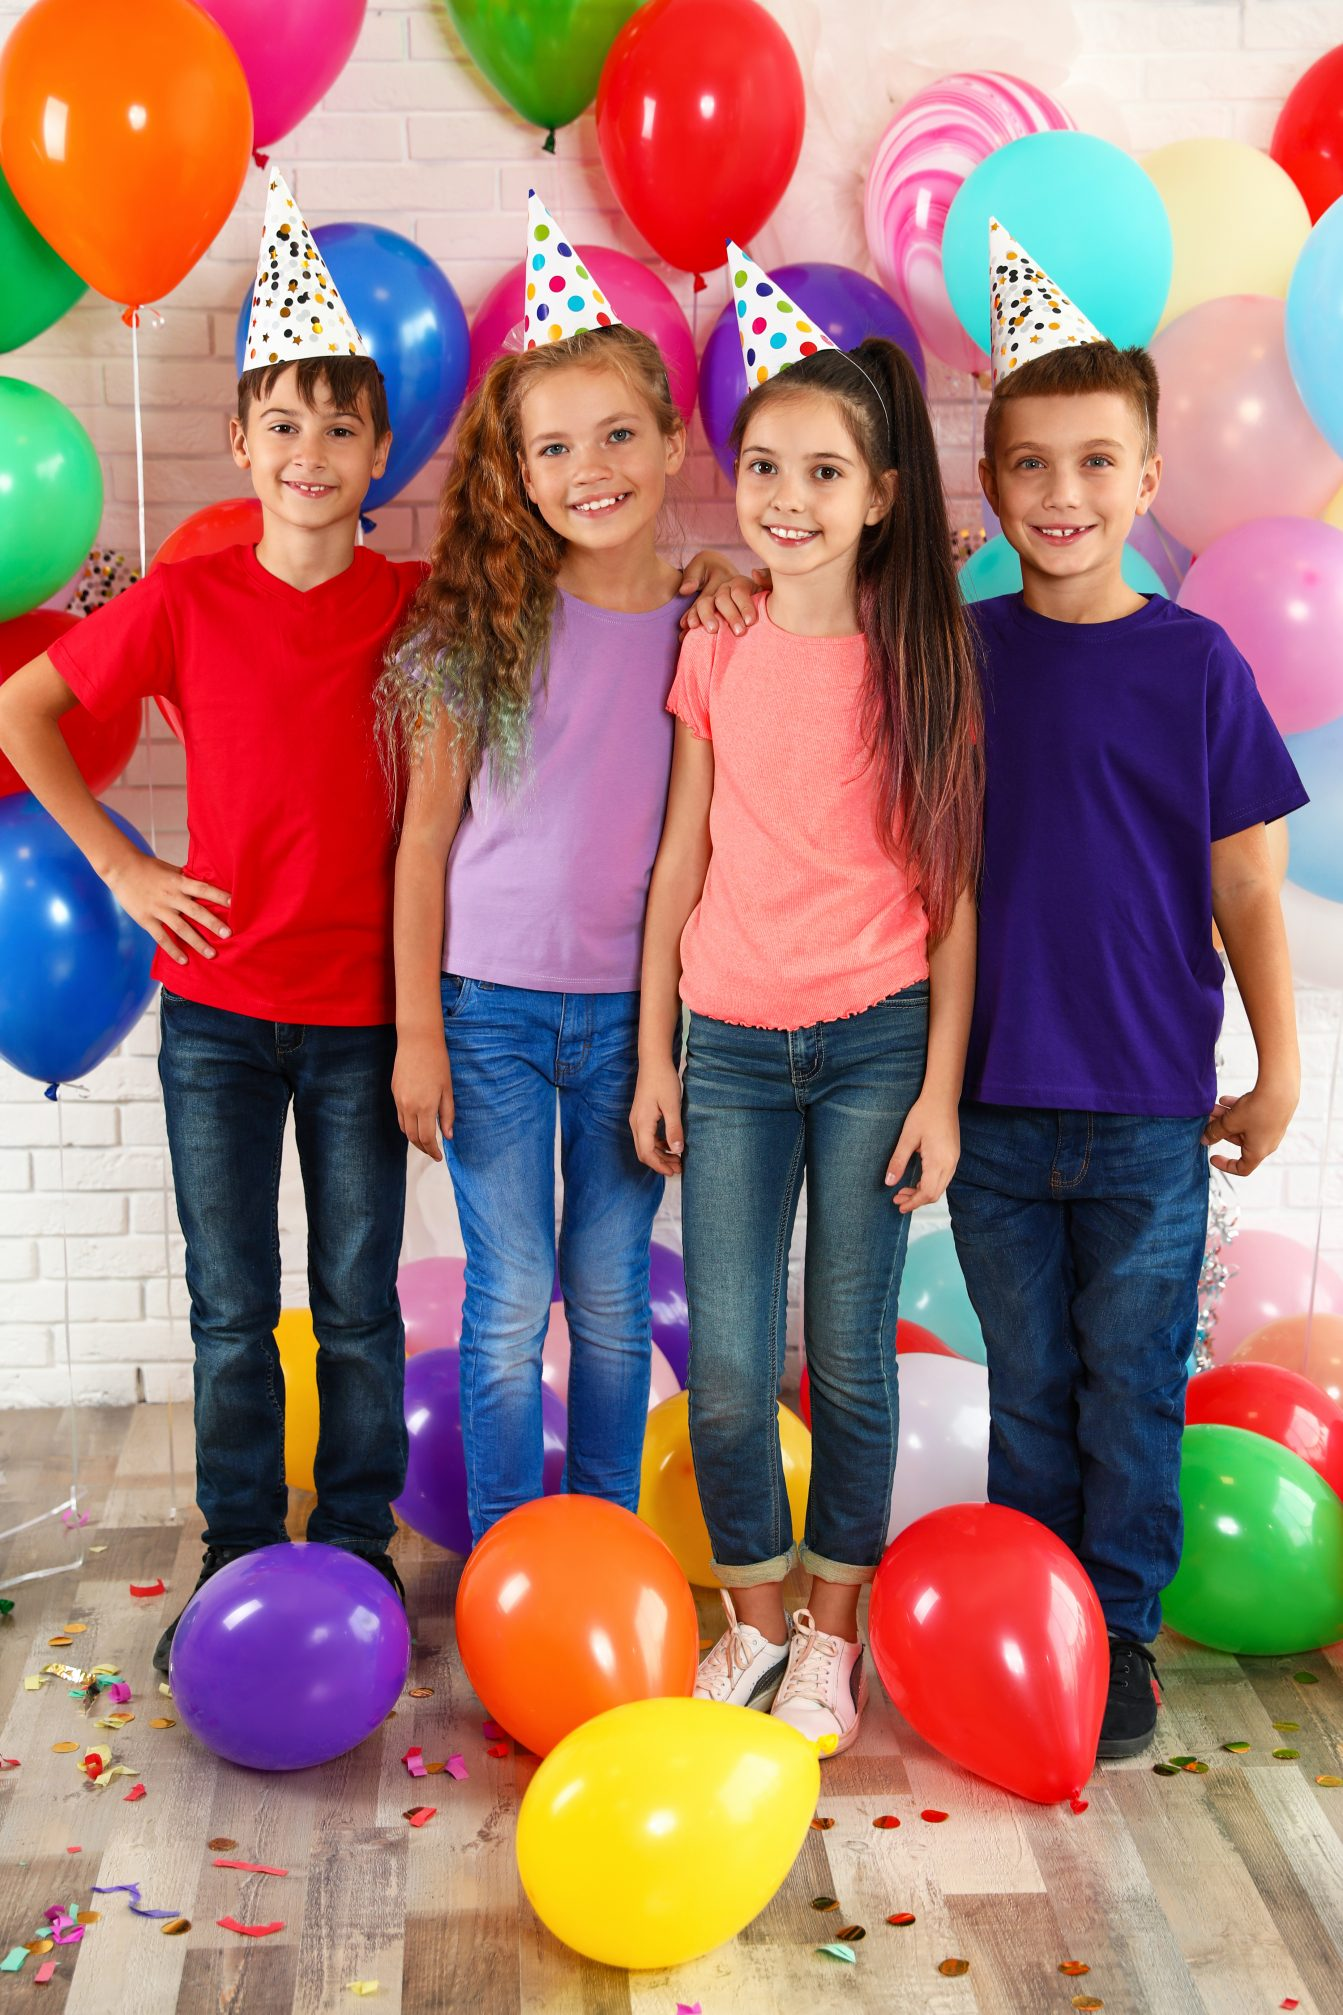 Happy children near bright balloons at birthday party indoors